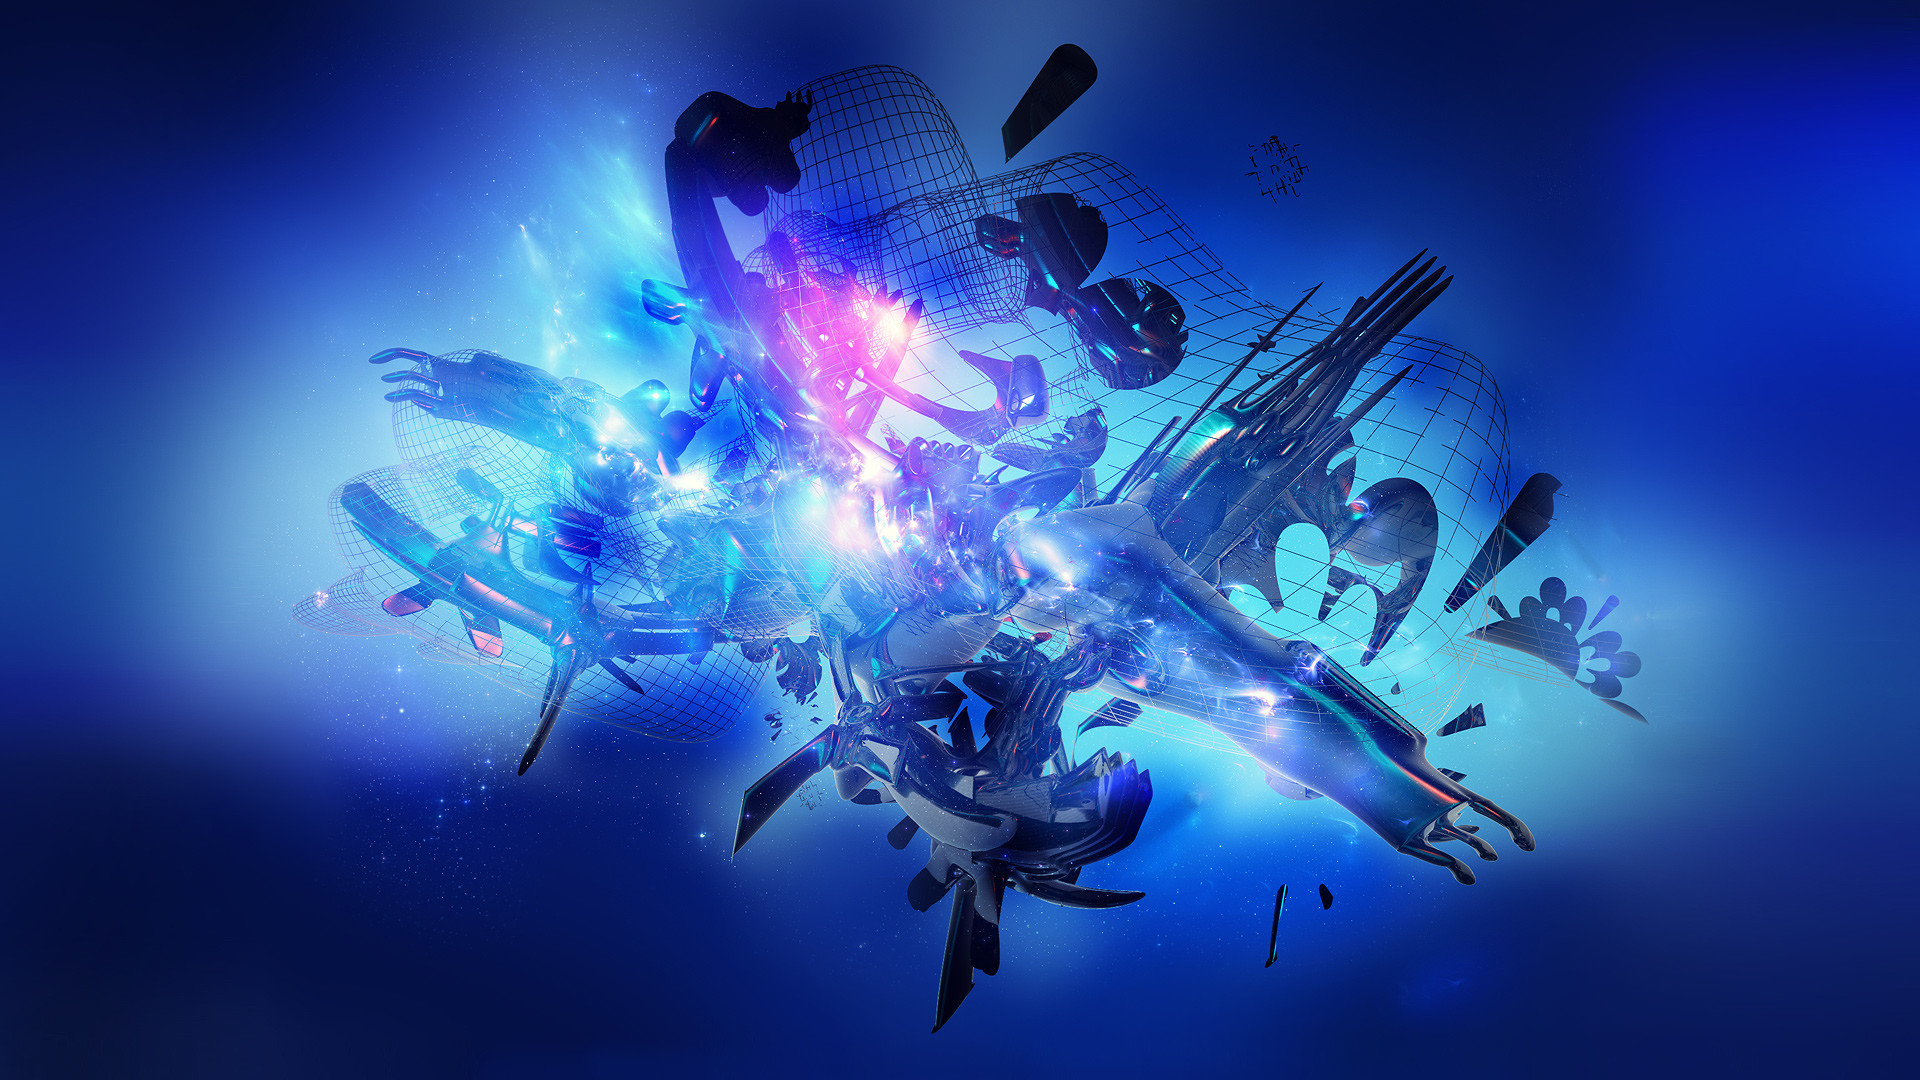 Games Wallpaper 1080p Posted By Samantha Cunningham